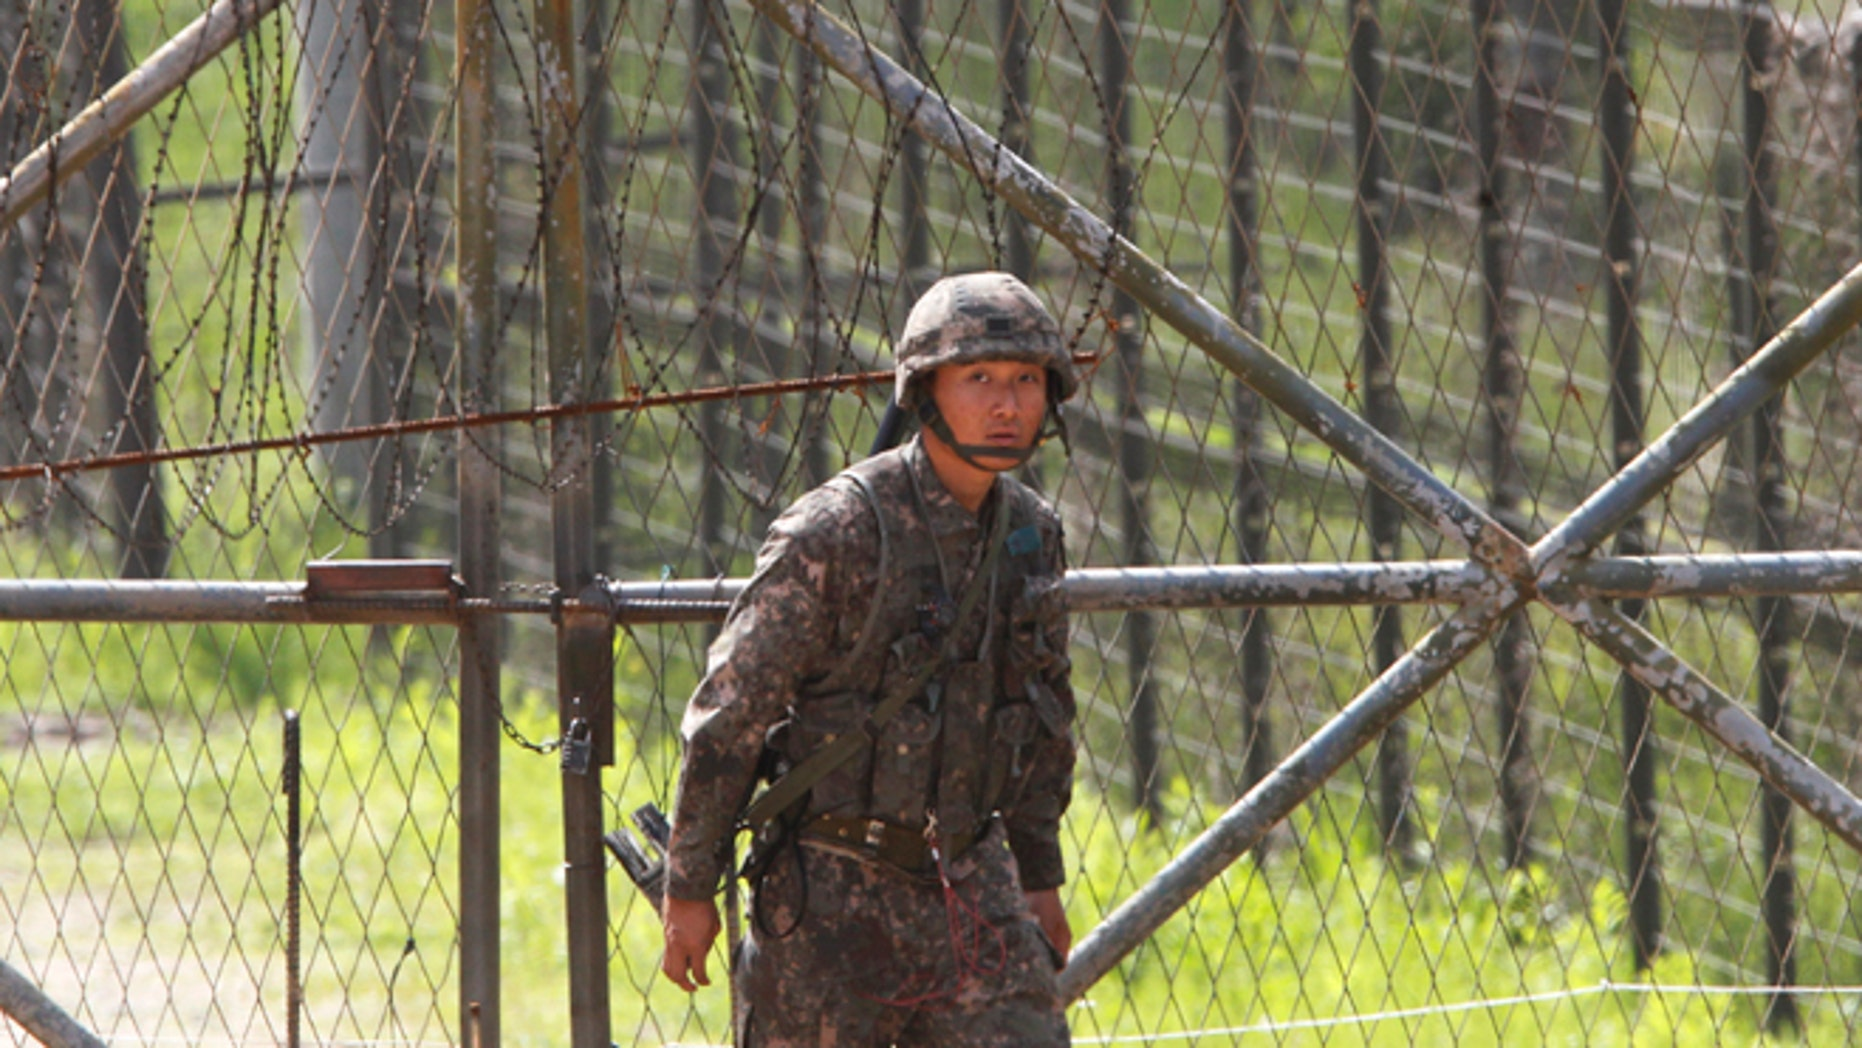 May 19, 2013: A South Korean army soldier passes by a barbed-wire fence in Paju, South Korea, near the border village of Panmunjom.